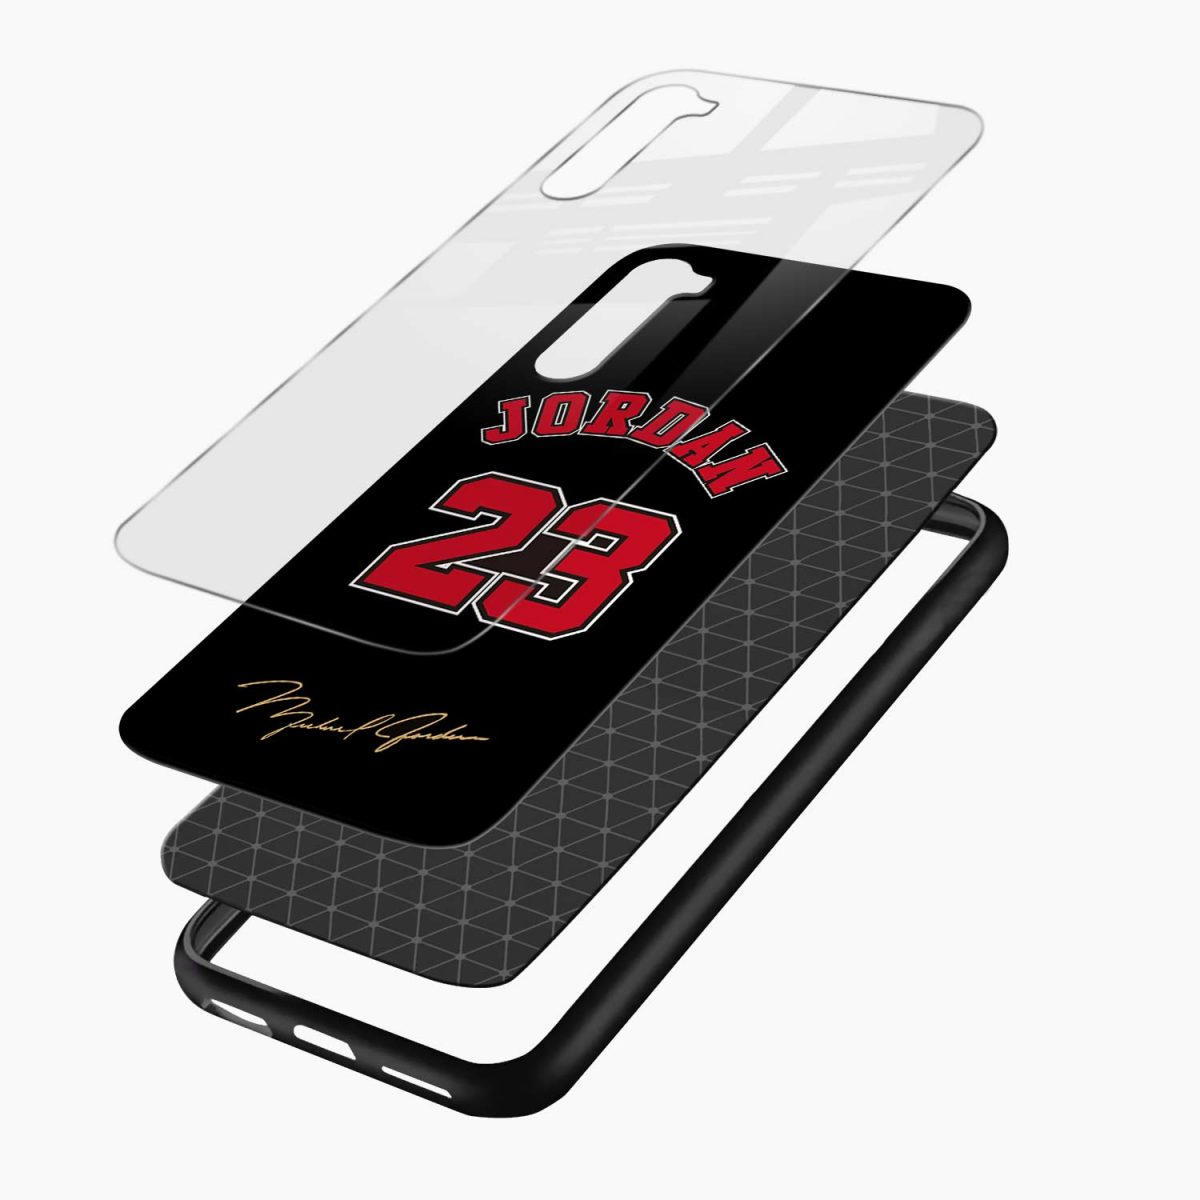 jordan 23 layers view oneplus nord back cover